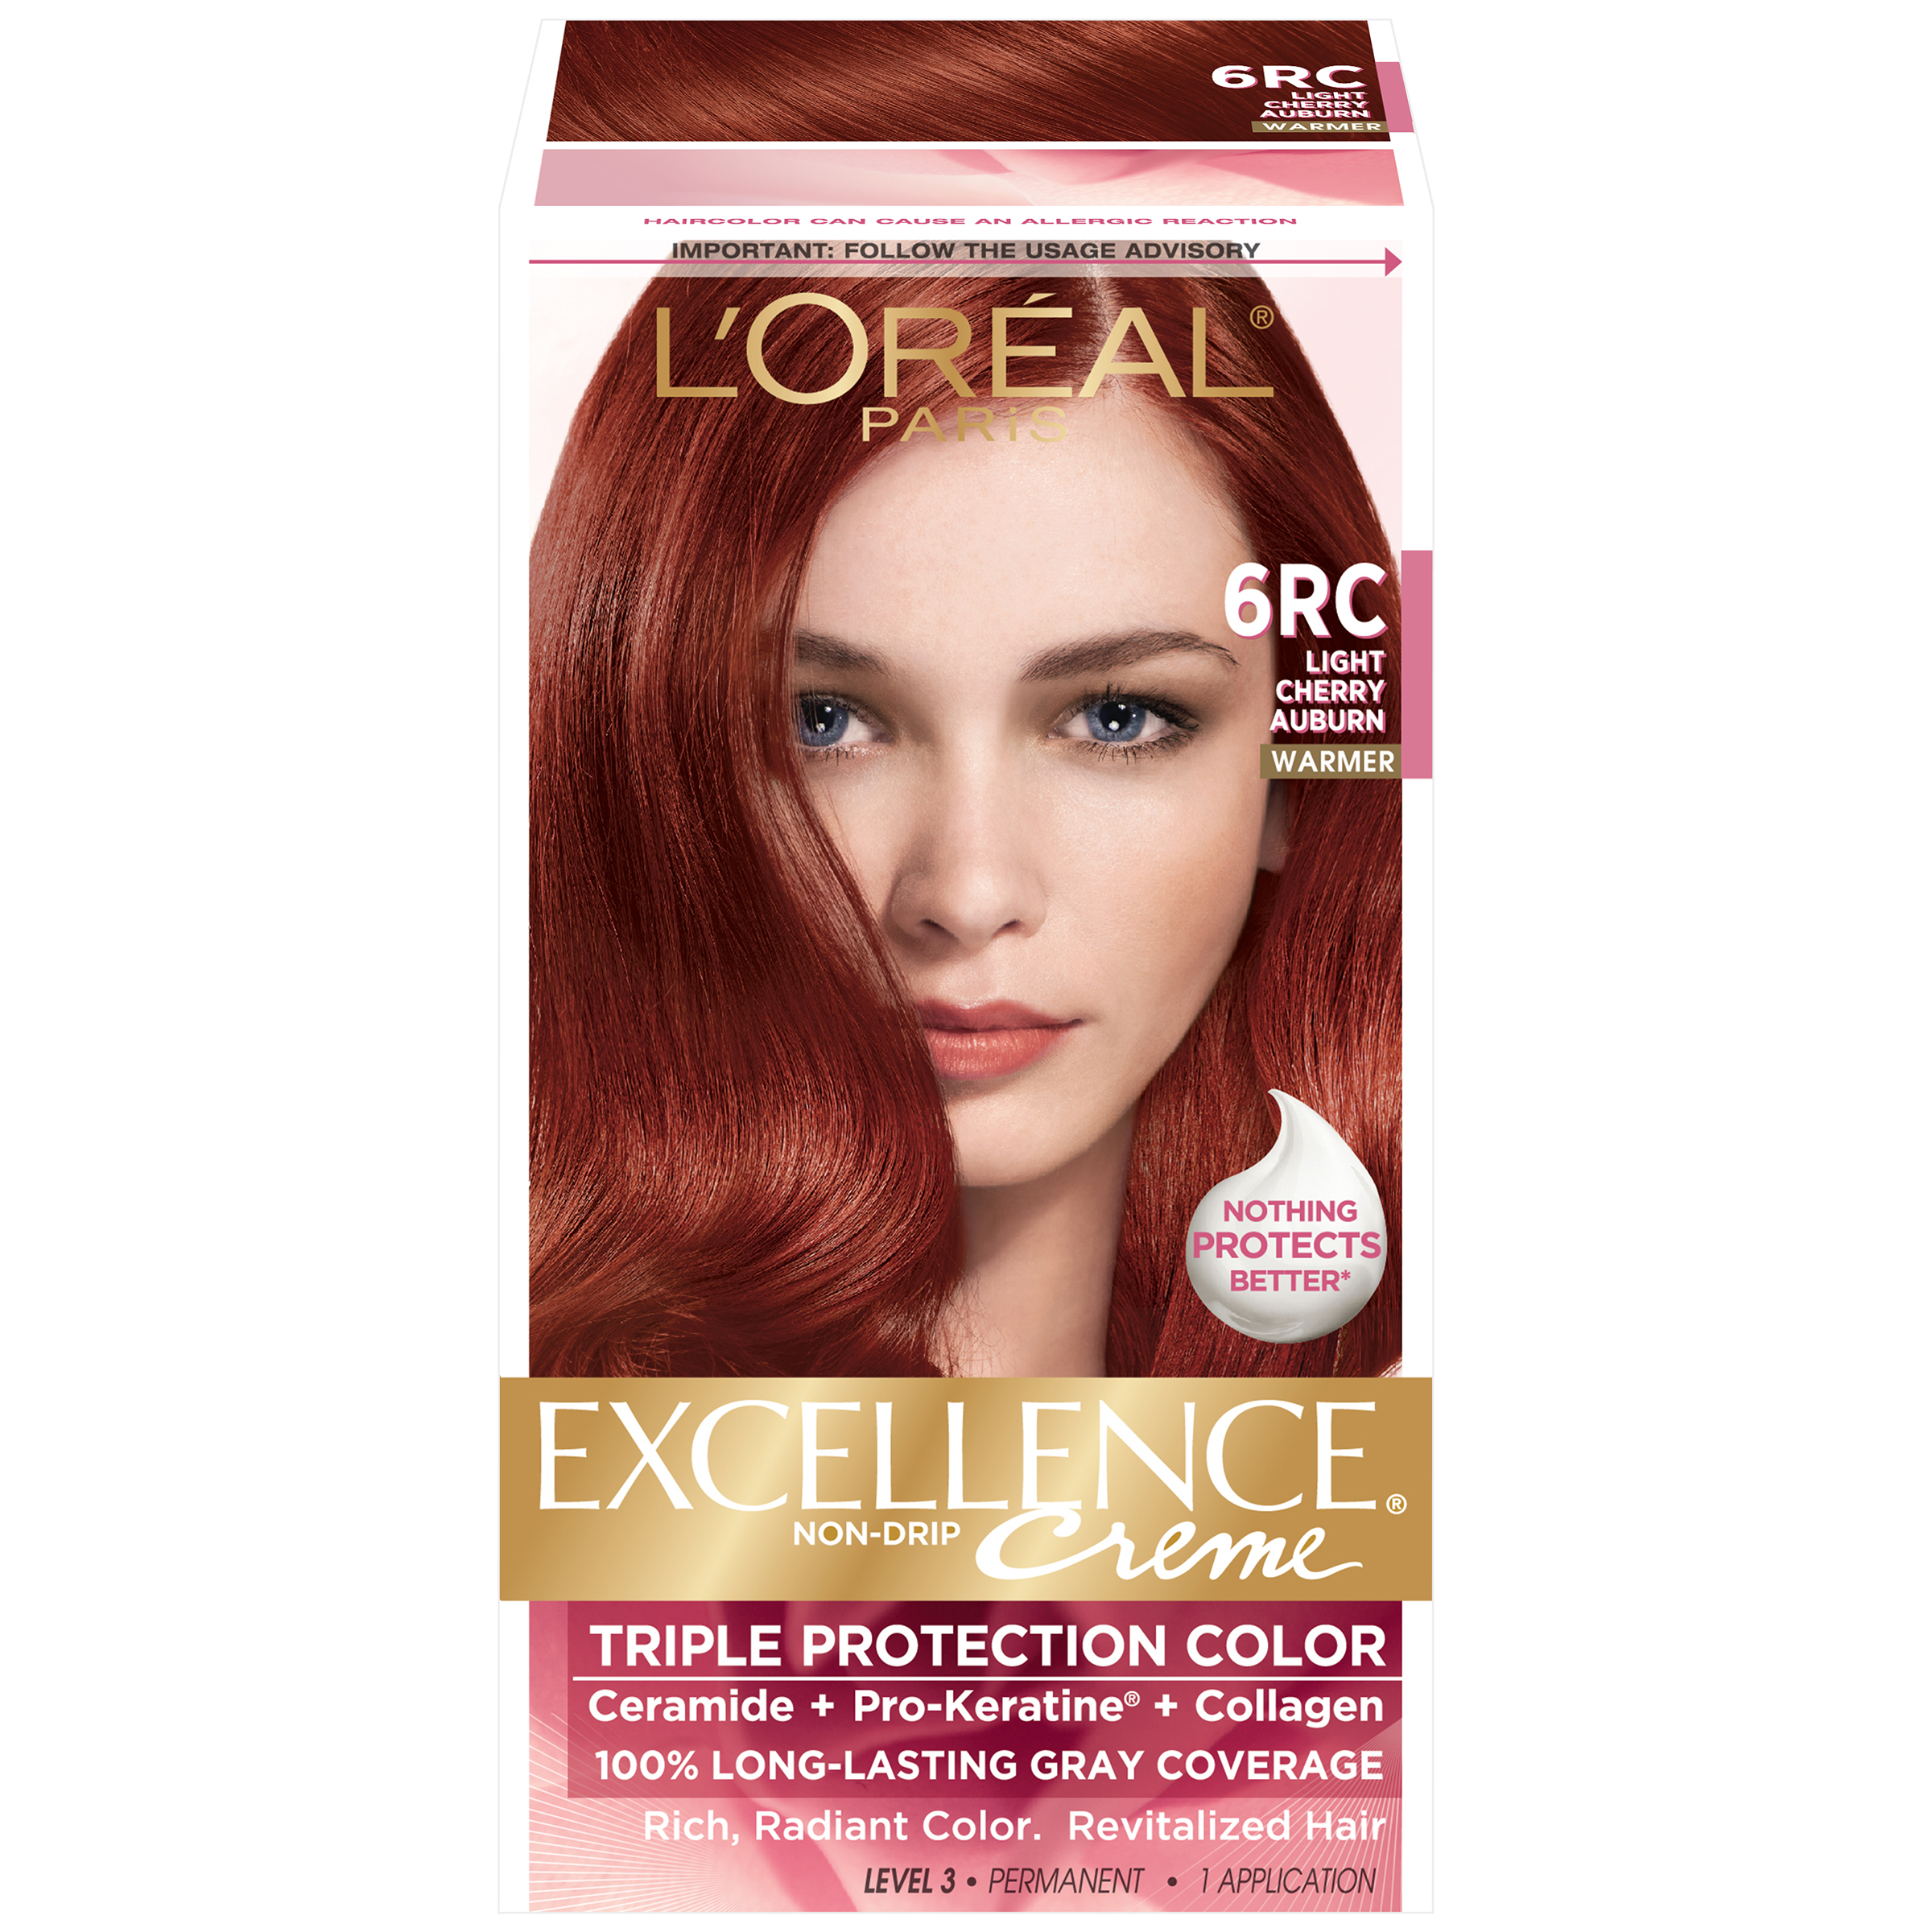 LOreal 6RC Warmer Light Cherry Auburn Hair Color 1 KT BOX